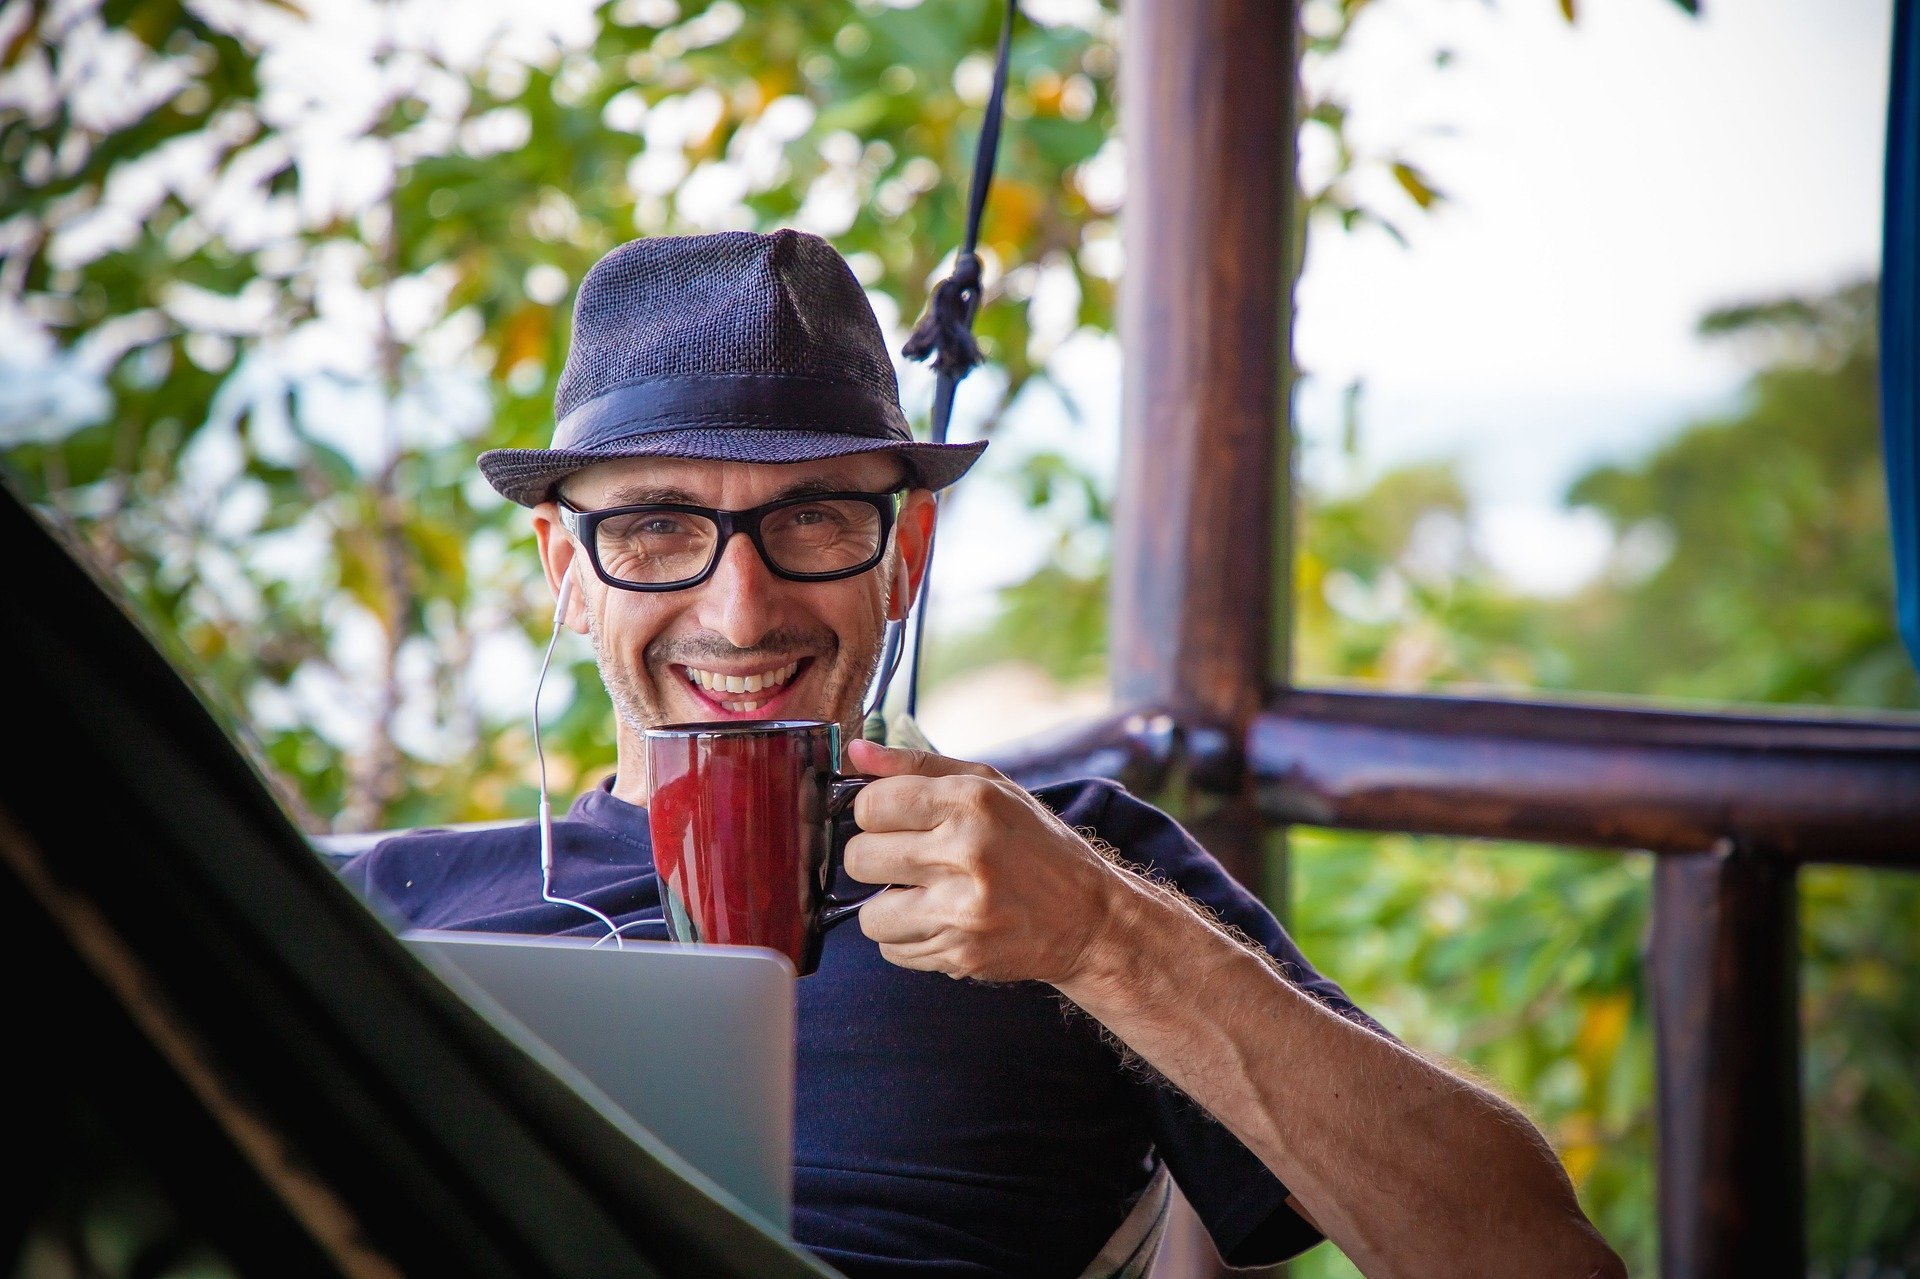 A remote worker drink coffee and smiling because he has the freedom of working together from anywhere thanks to Wurkr